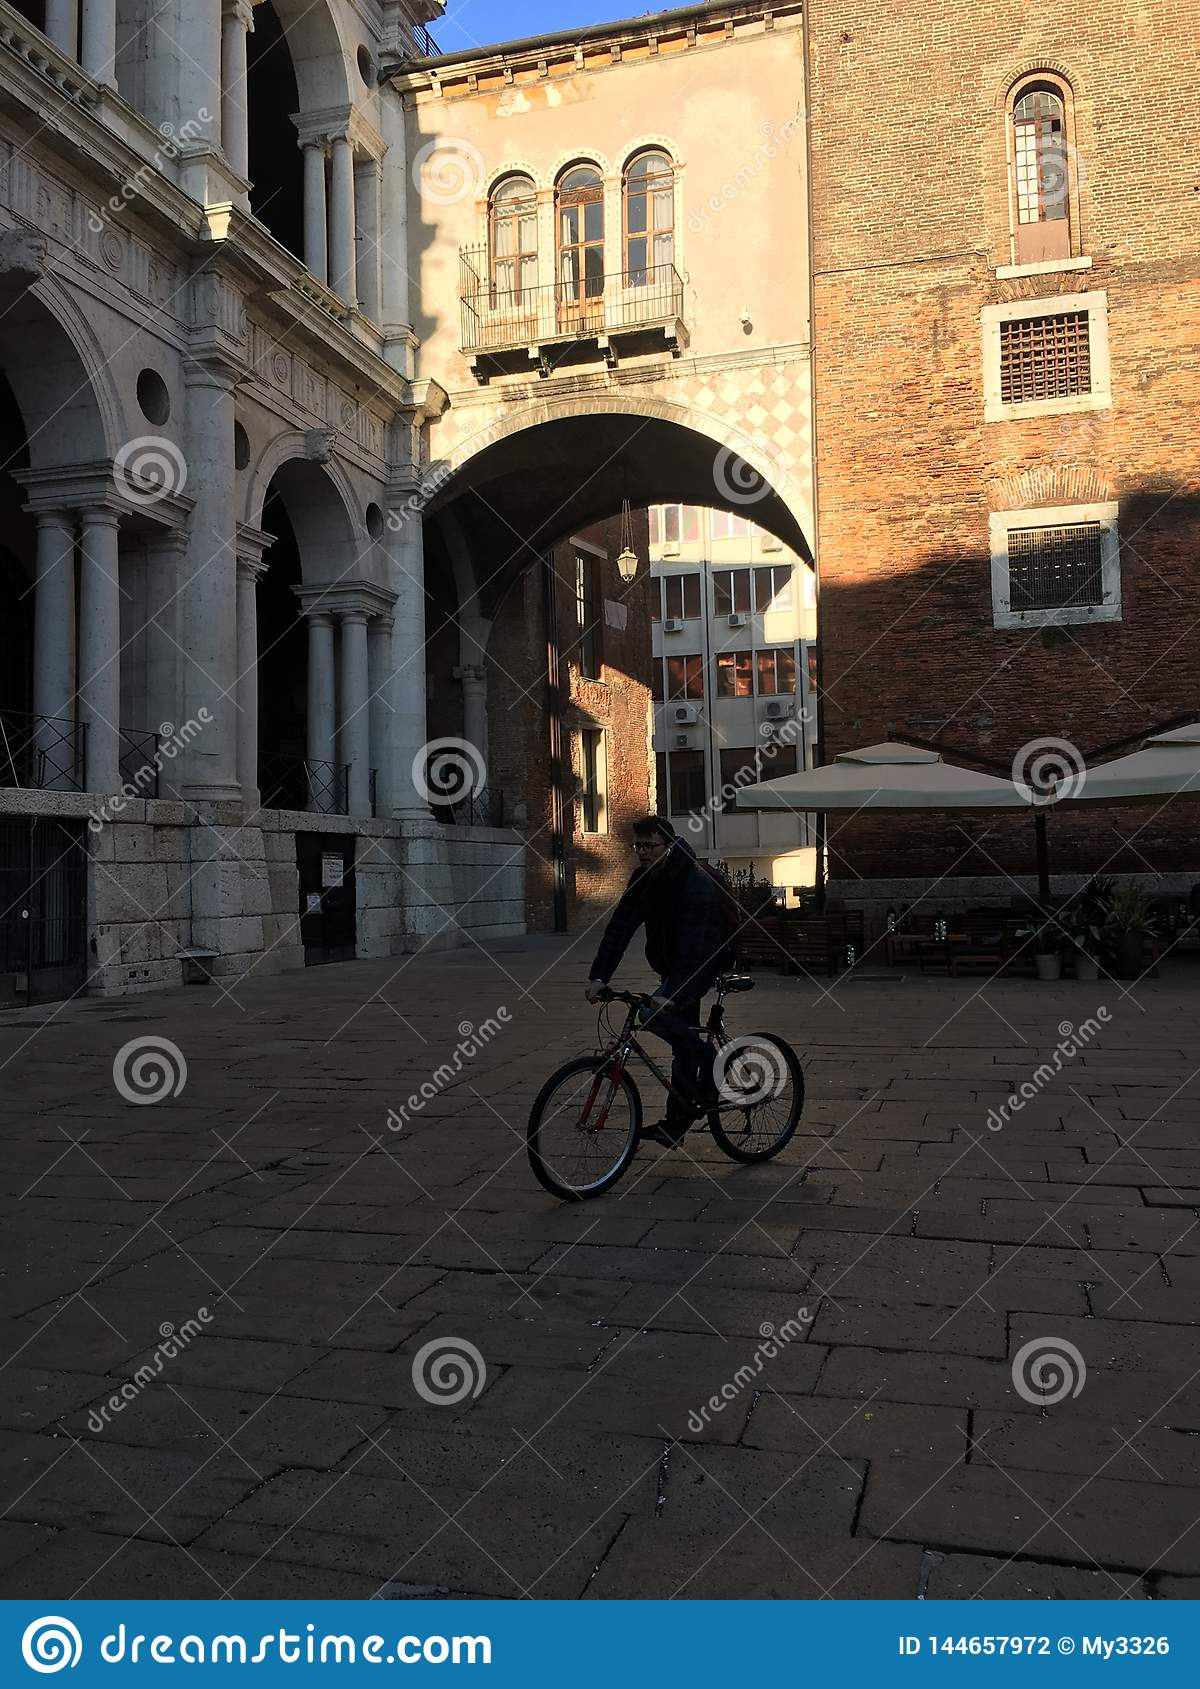 Bicycle man under a bridge in Rome